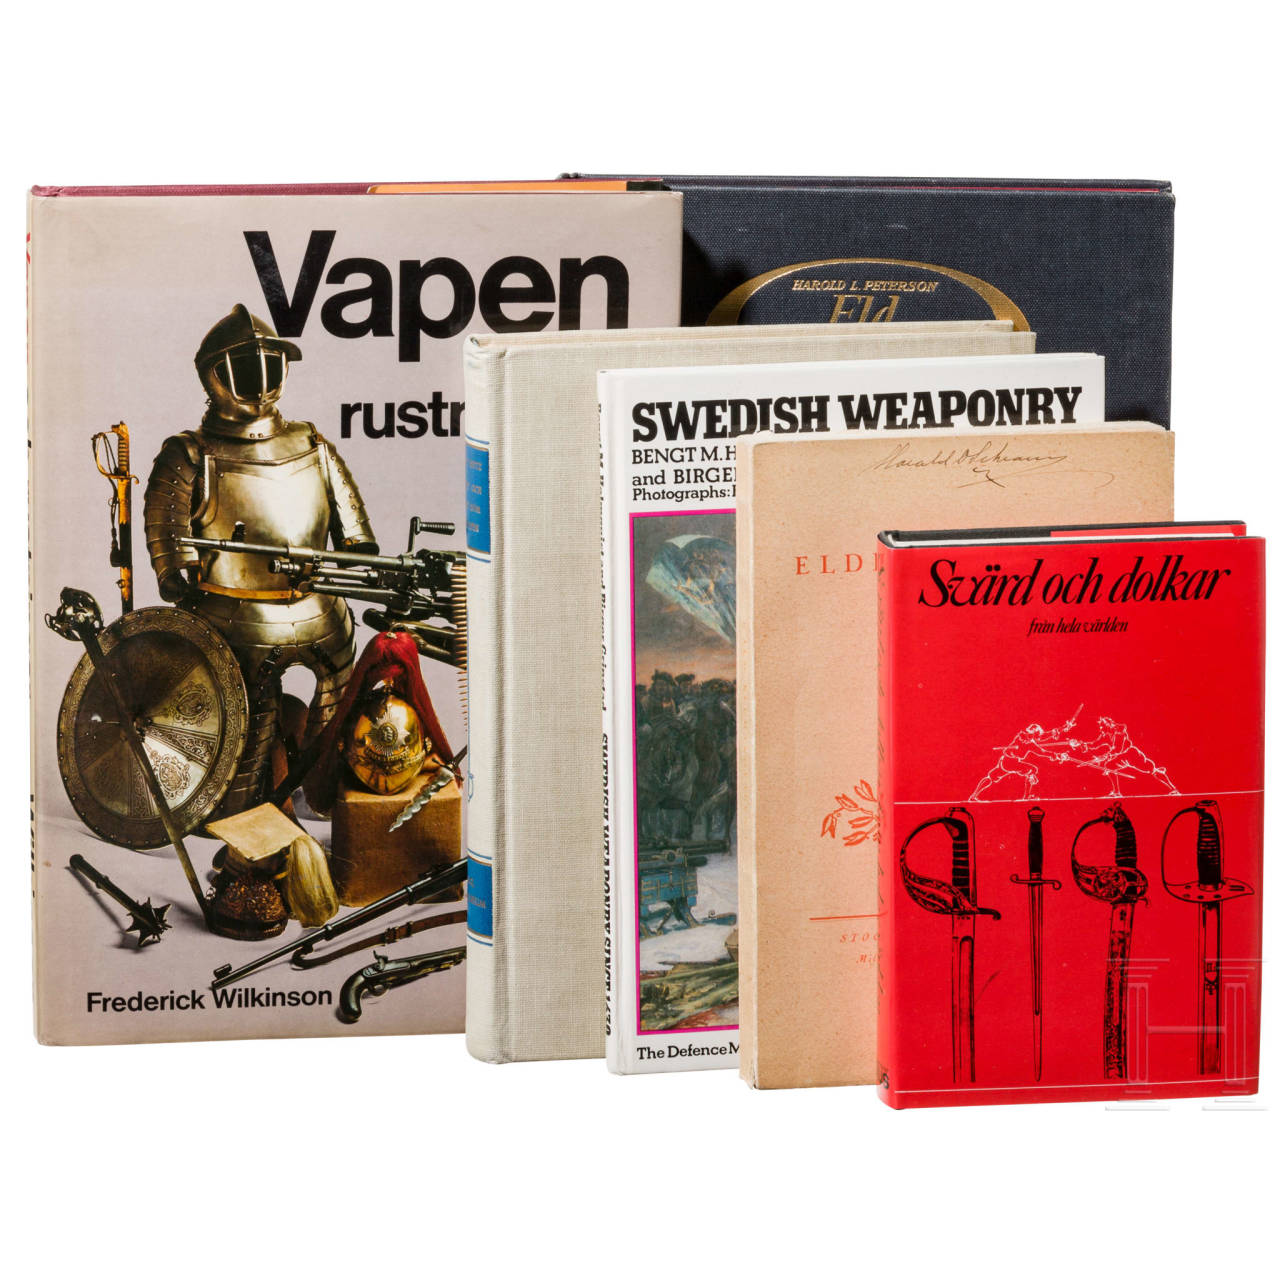 Six Swedish books on edged weapons and firearms